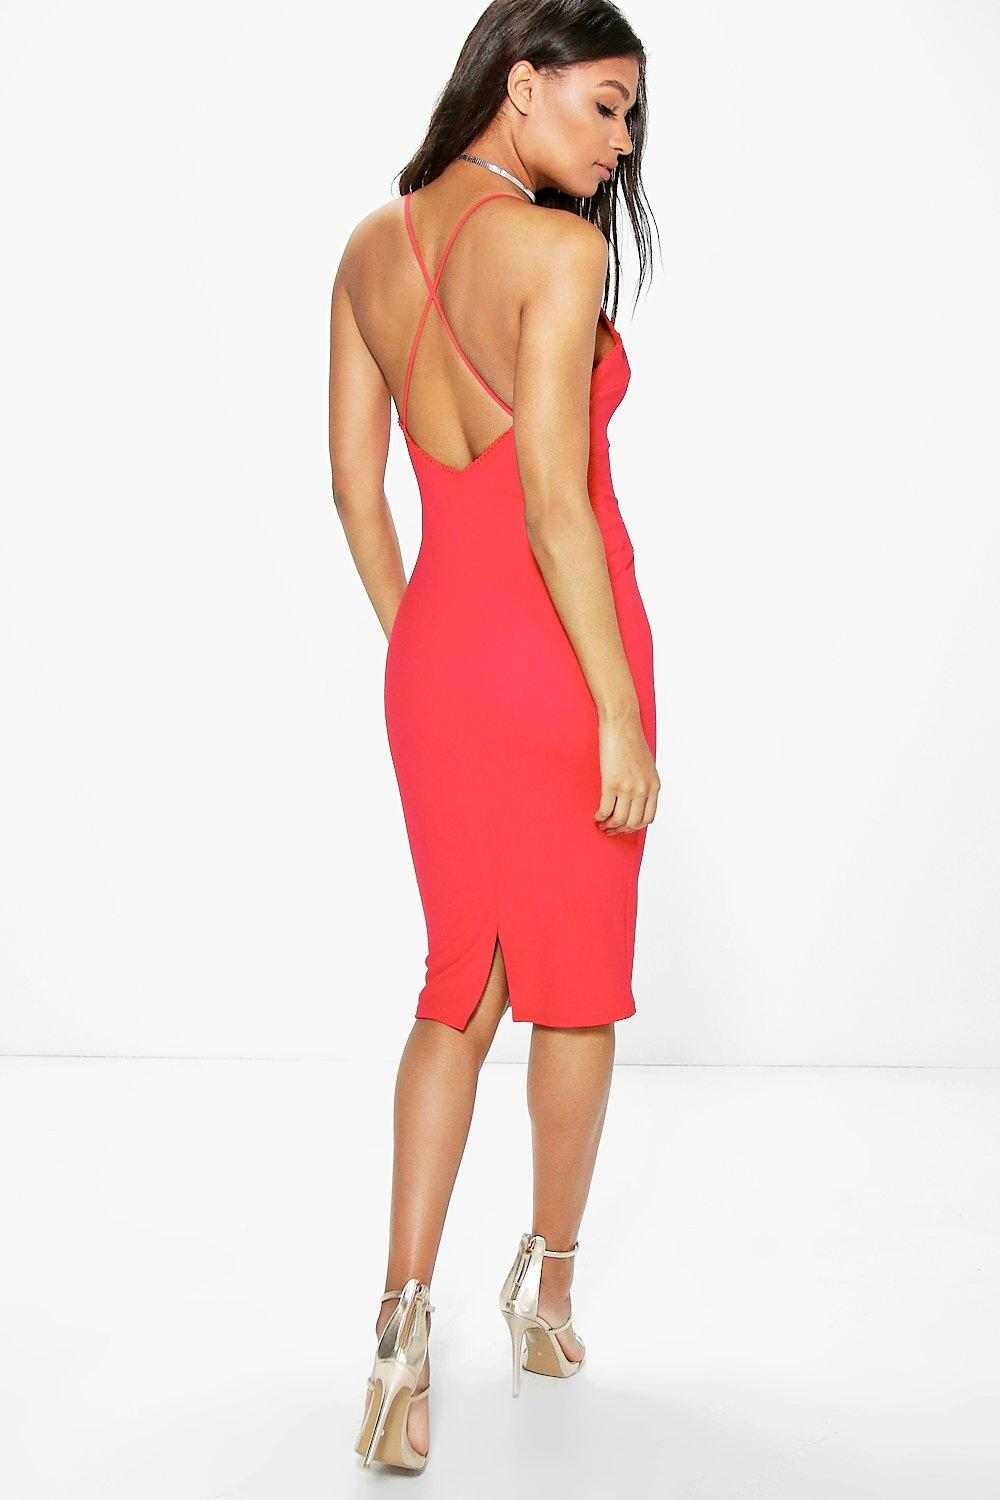 Cora Trim Detail Cross Back Strap Midi Dress